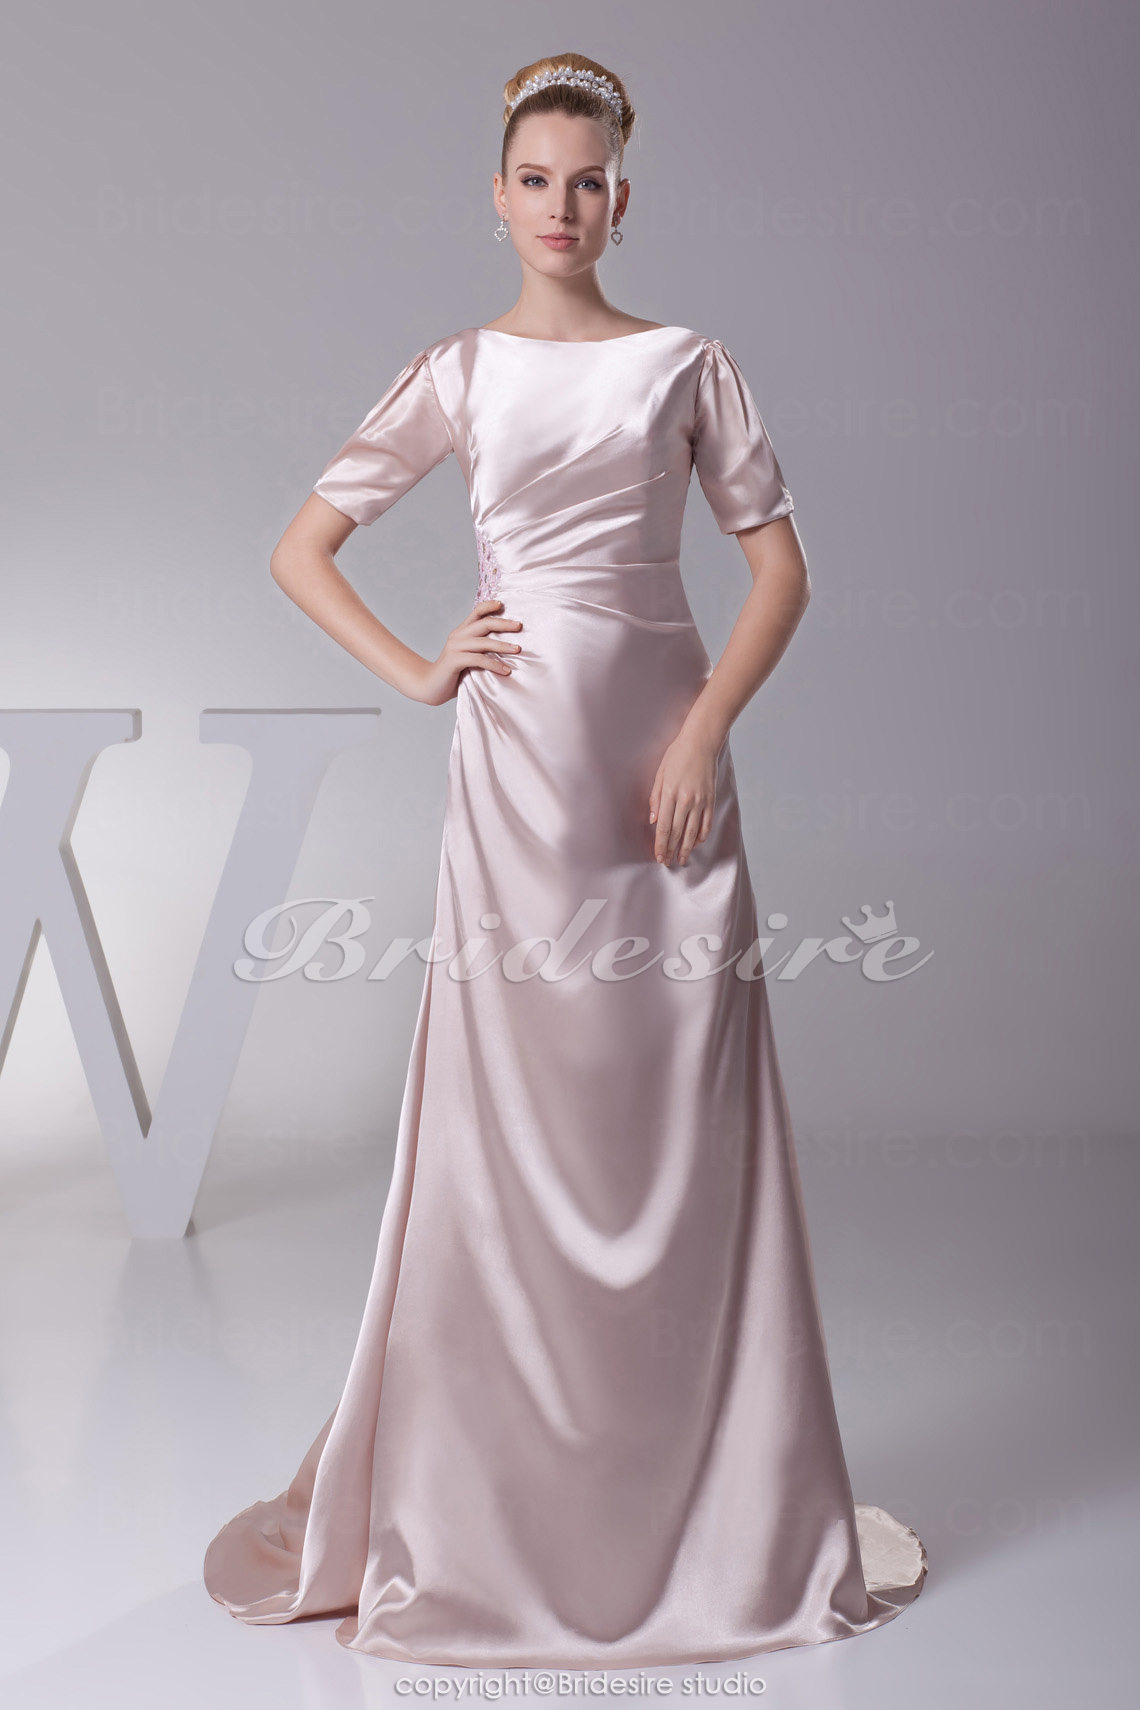 A-line Scoop Sweep/Brush Train Short Sleeve Stretch Satin Mother of the Bride Dress